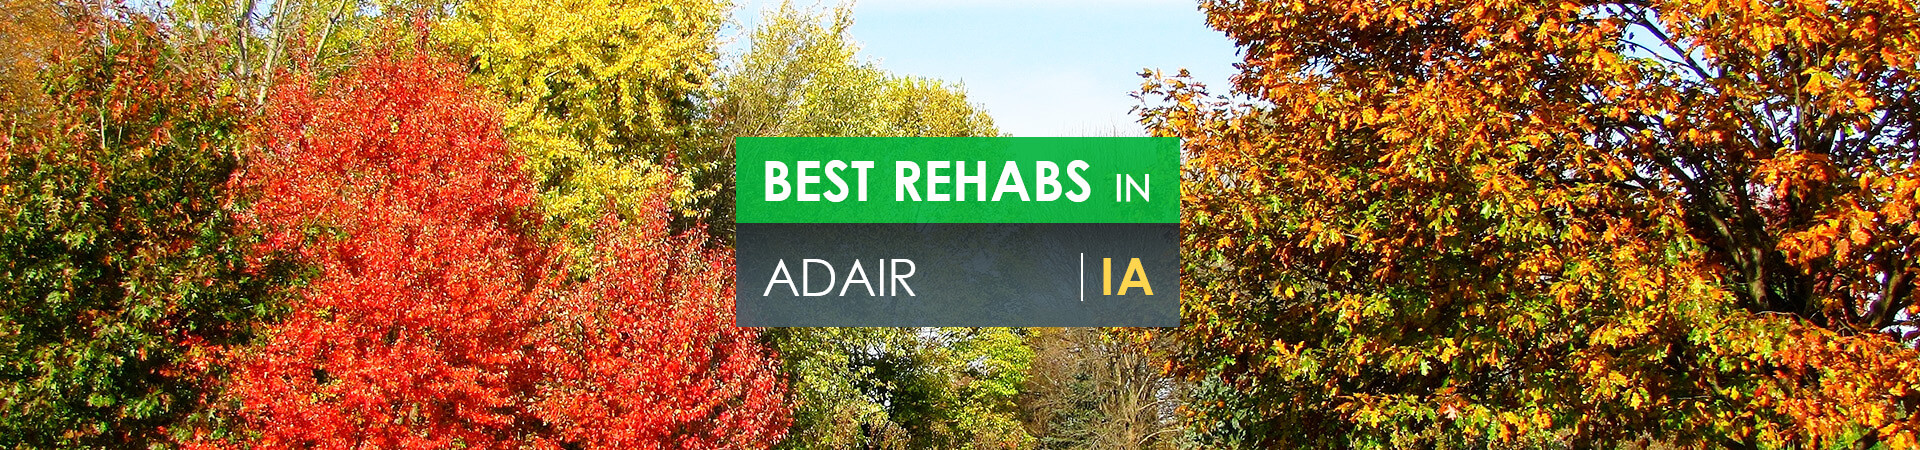 Best rehabs in Adair, IA